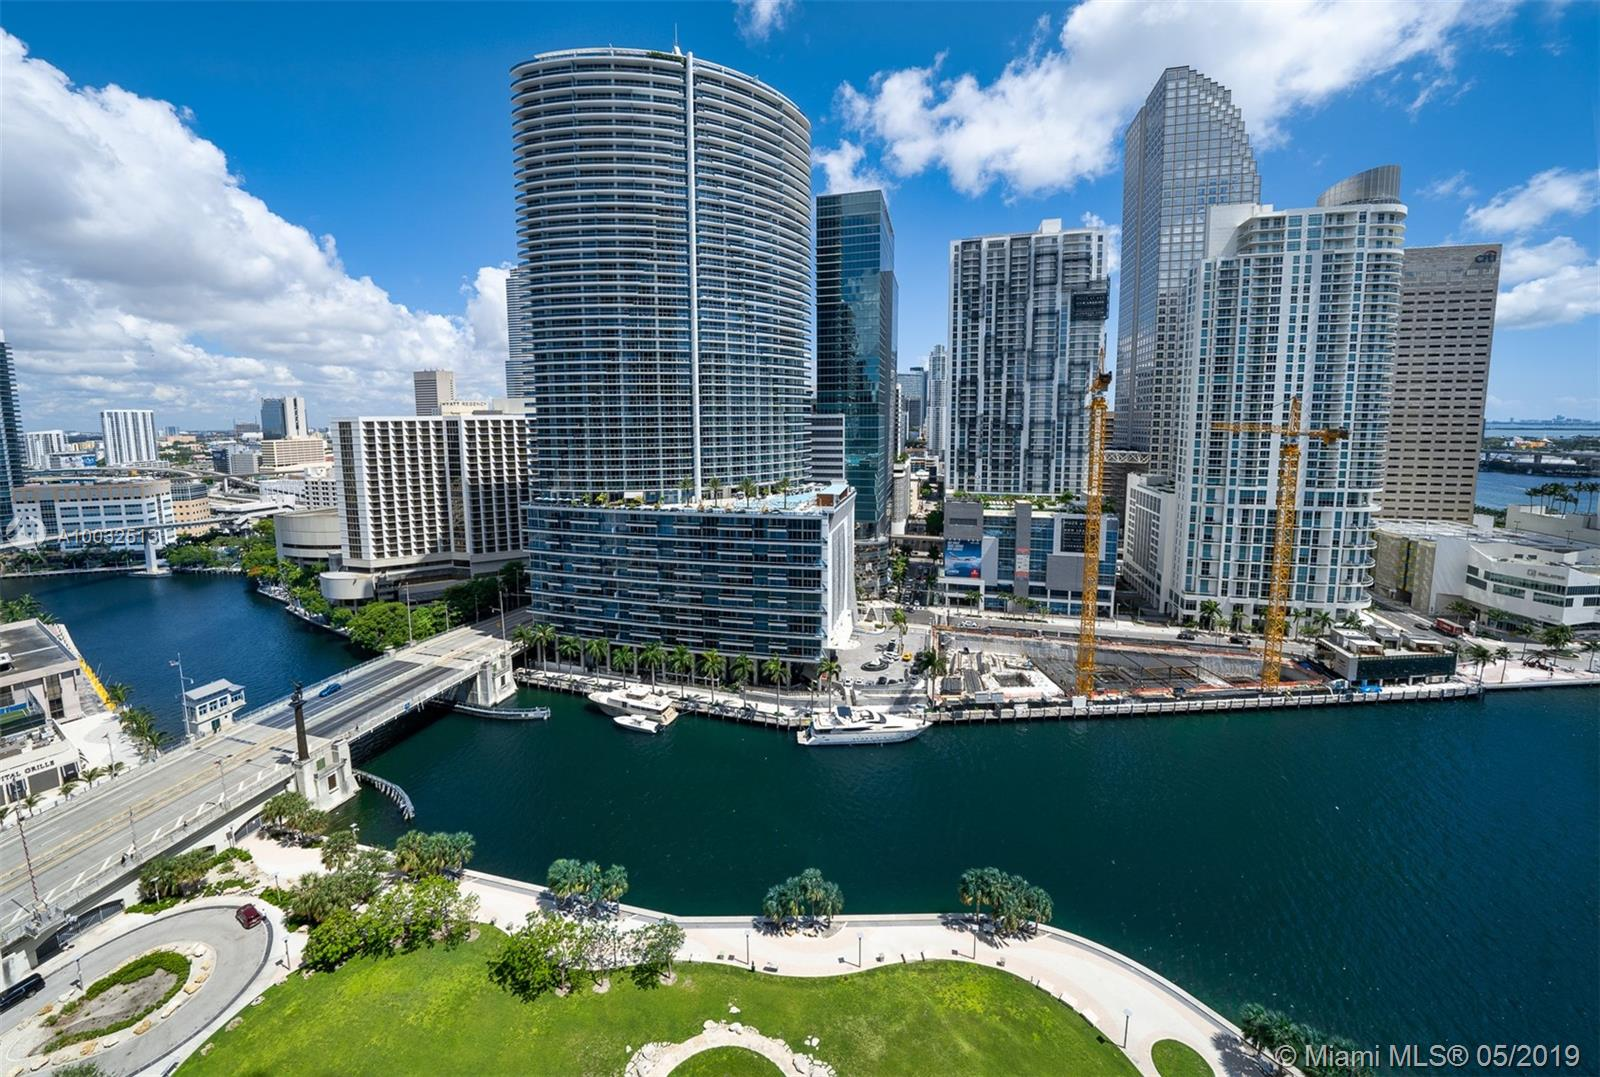 Icon Brickell 1 #2310 - 475 BRICKELL AVE #2310, Miami, FL 33131